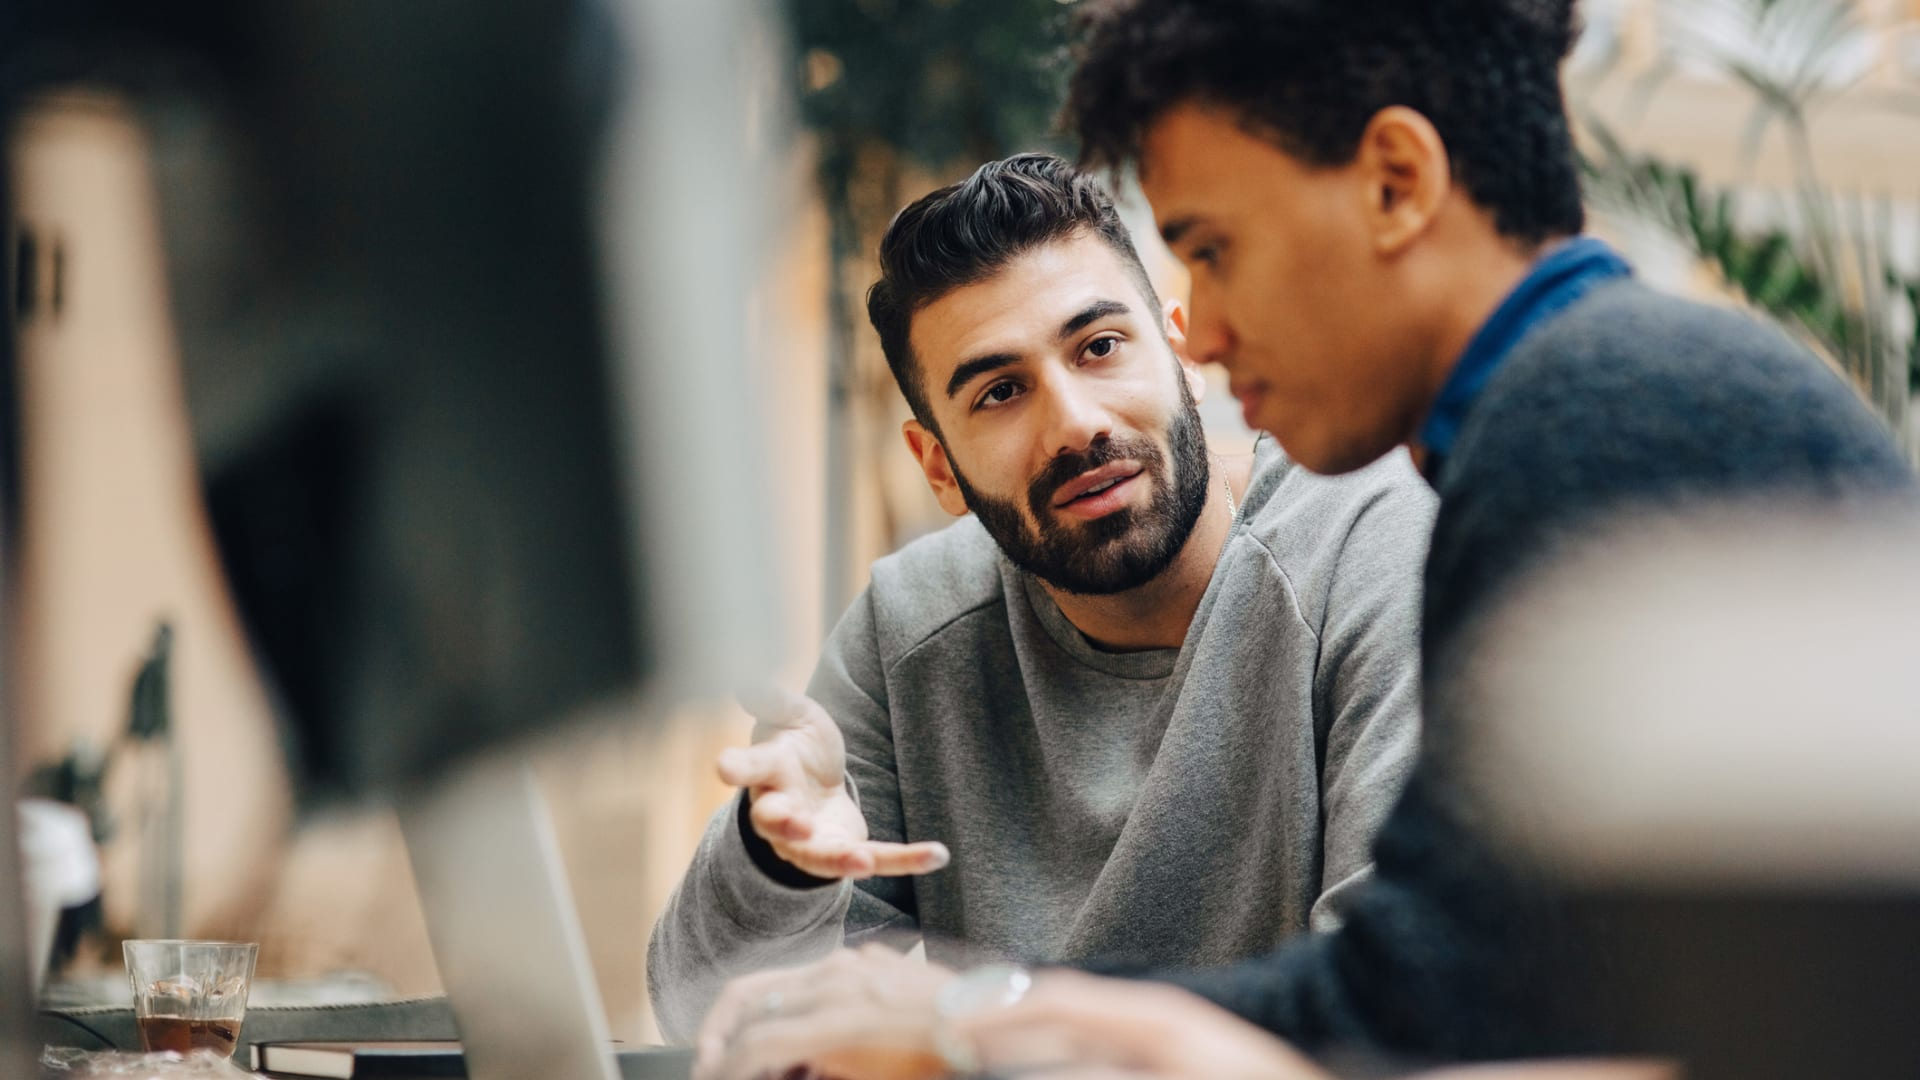 How to Deescalate an Argument Using Emotional Intelligence